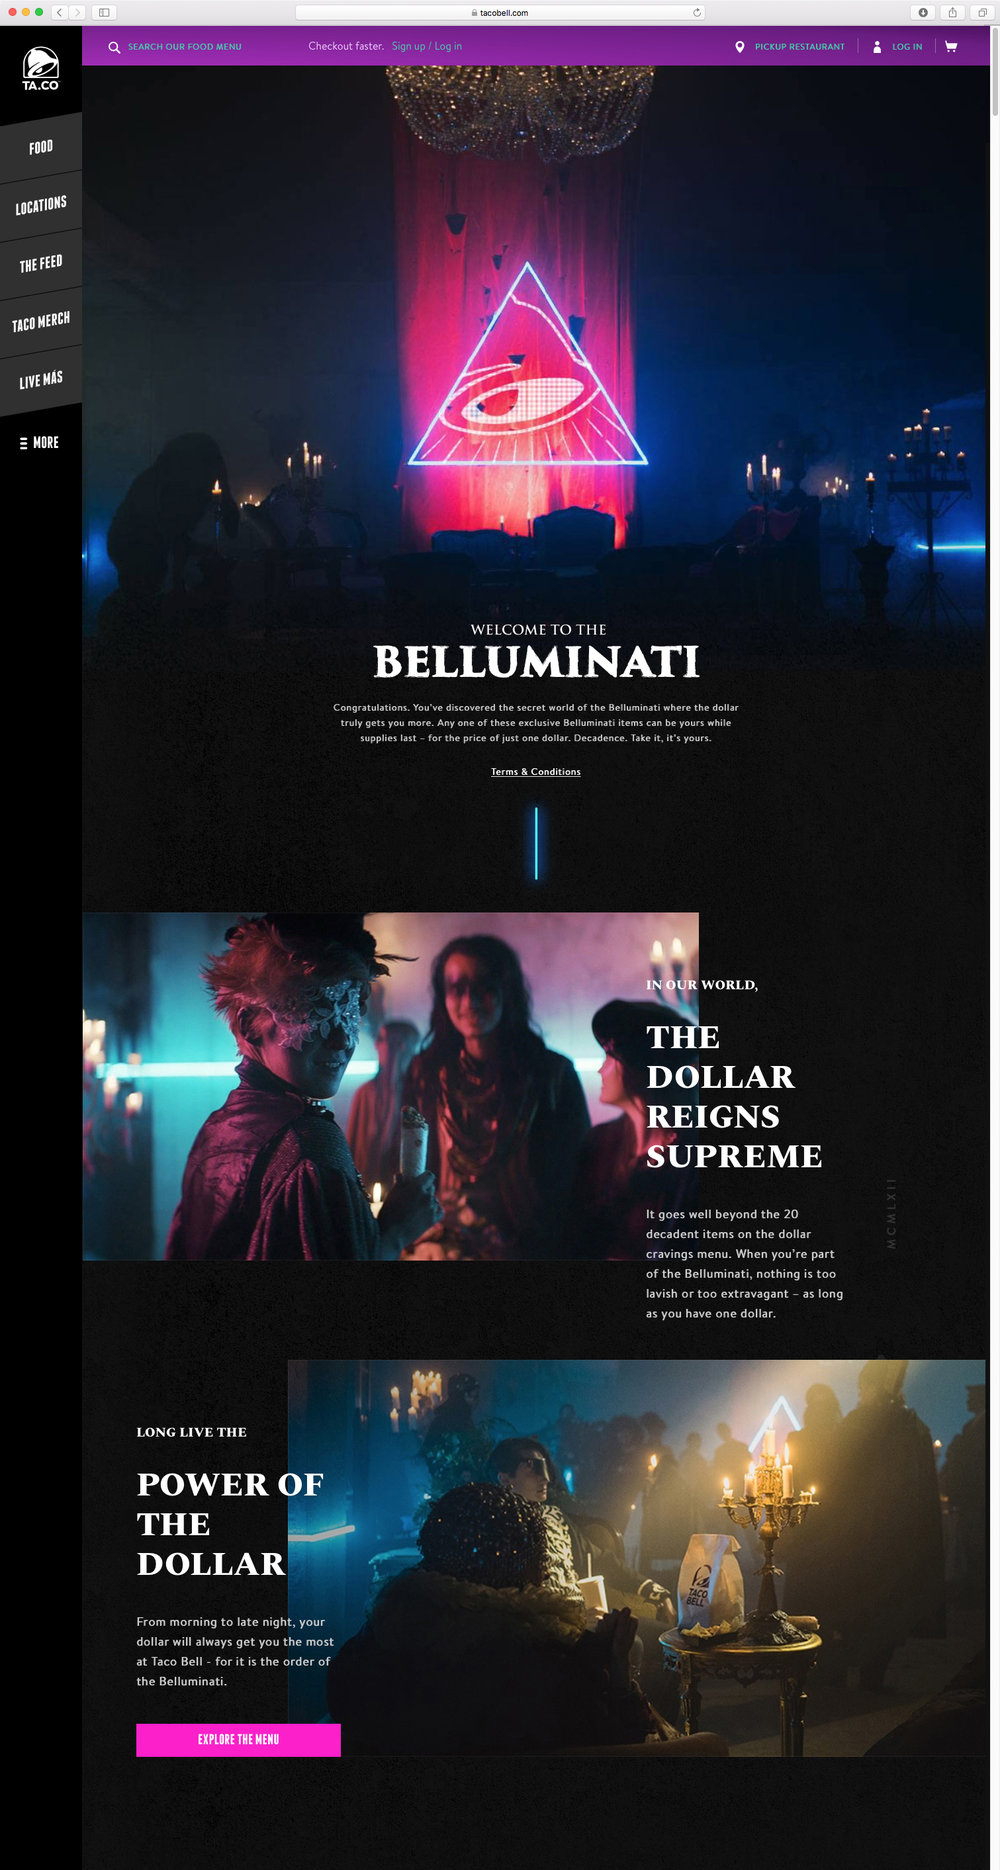 belluminati_hp_cropped.jpg